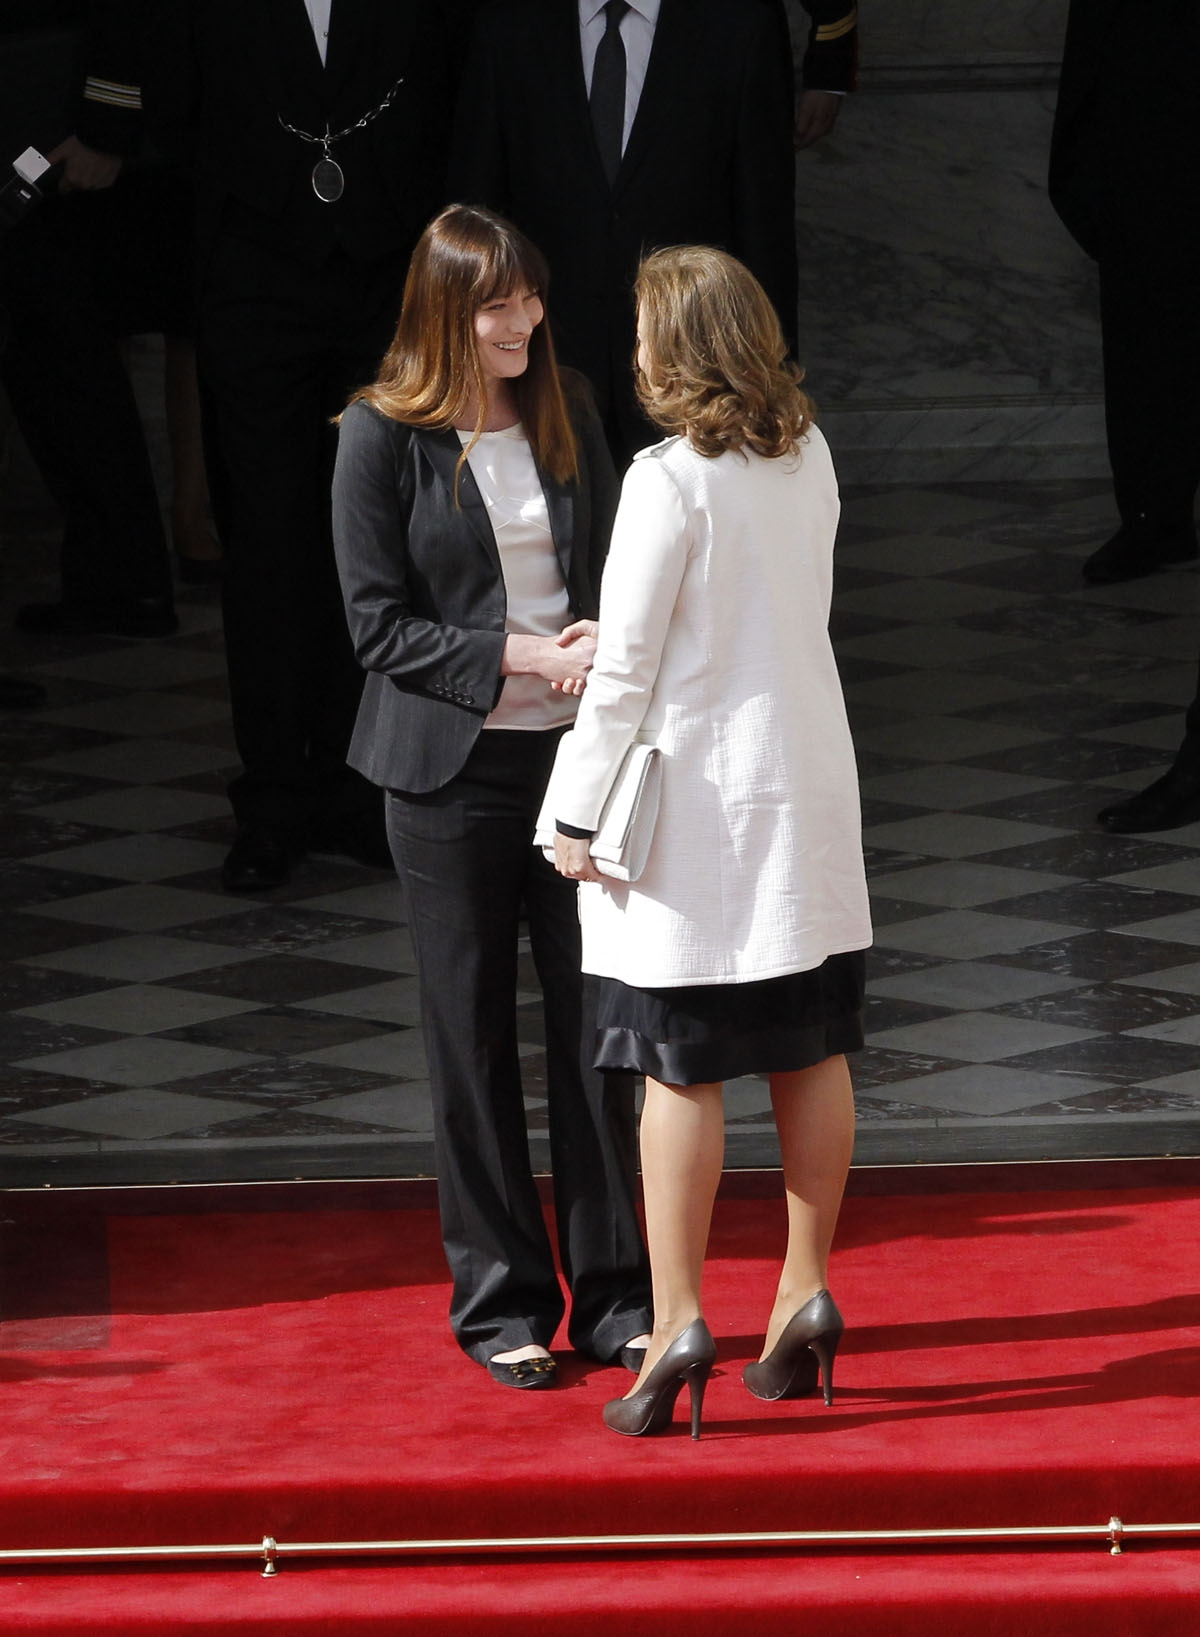 French outgoing First Lady Carla Bruni (L) welcomes Valerie Trierweiler, companion of France's President-elect Francois Hollande, prior to the start of the investiture ceremony between France's president Francois Hollande and his predecessor Nicolas Sarko